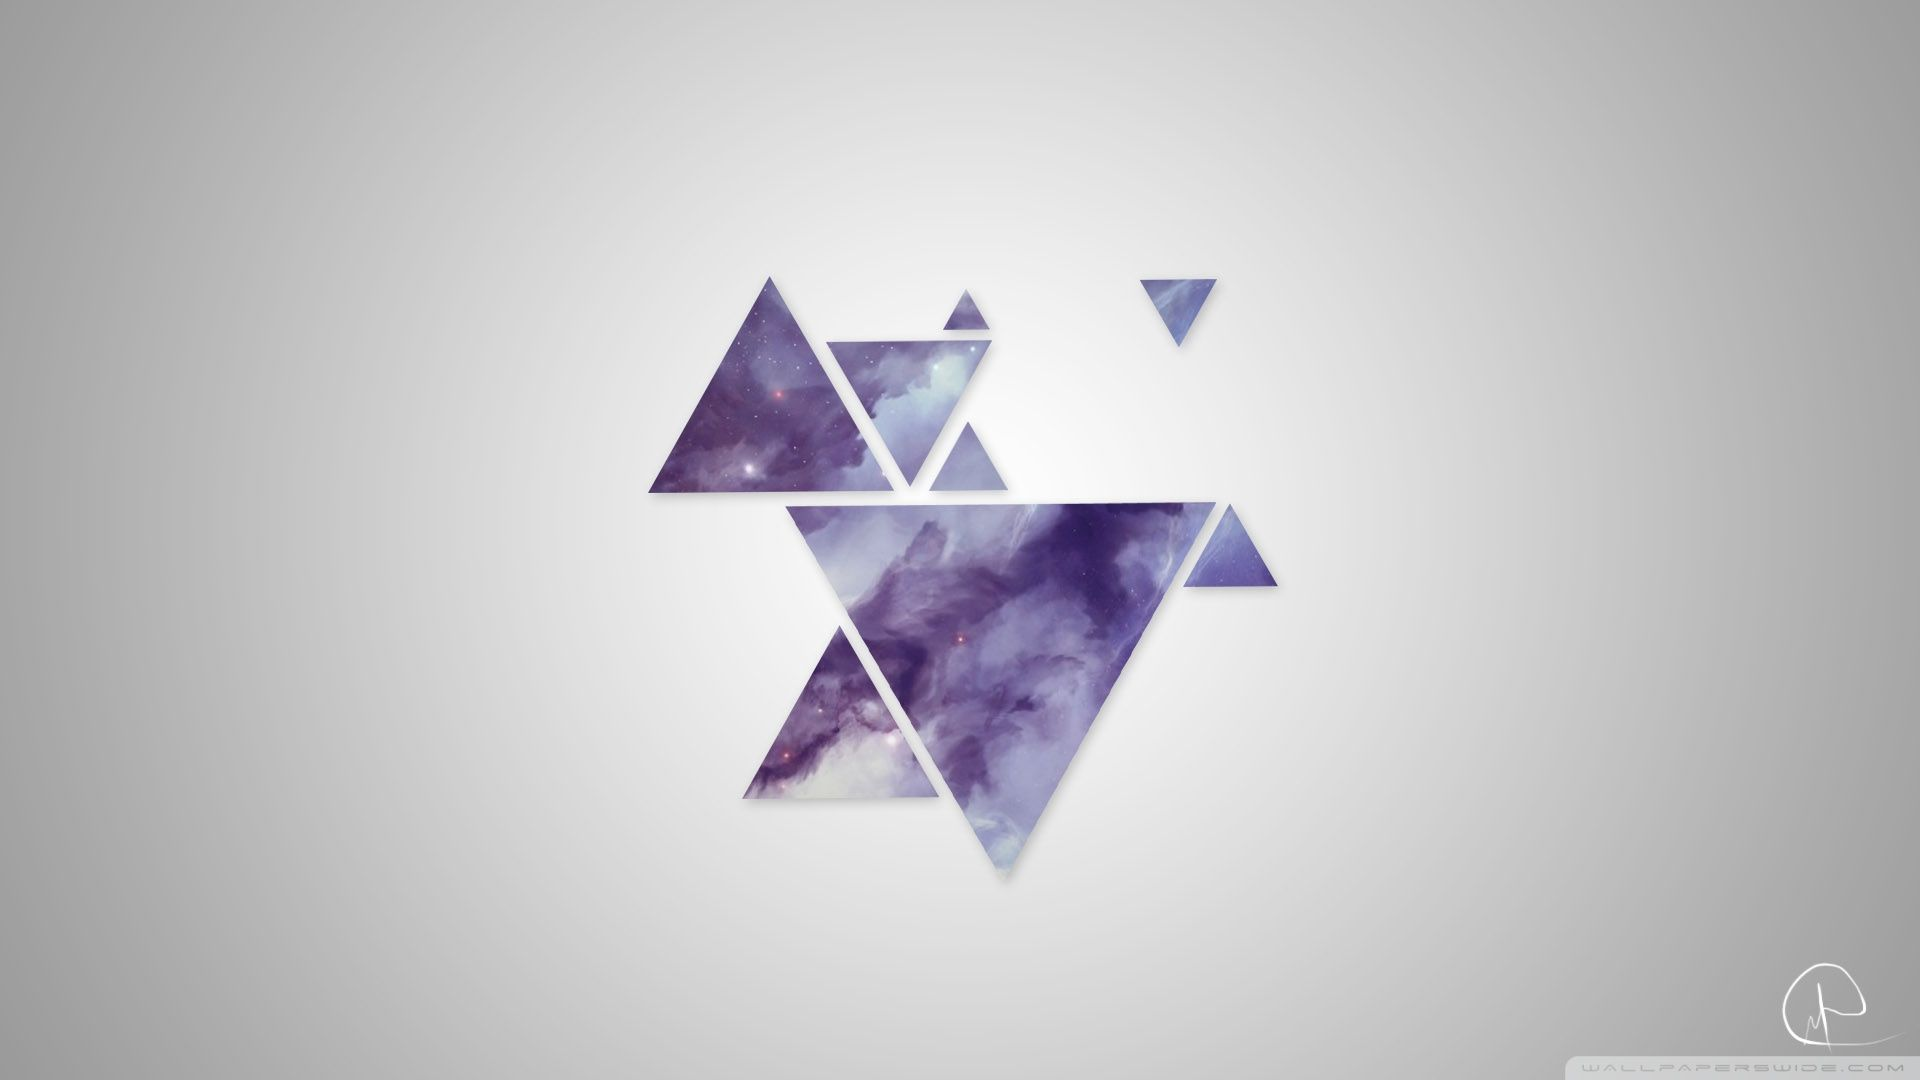 Triangle Wallpapers Top Free Triangle Backgrounds